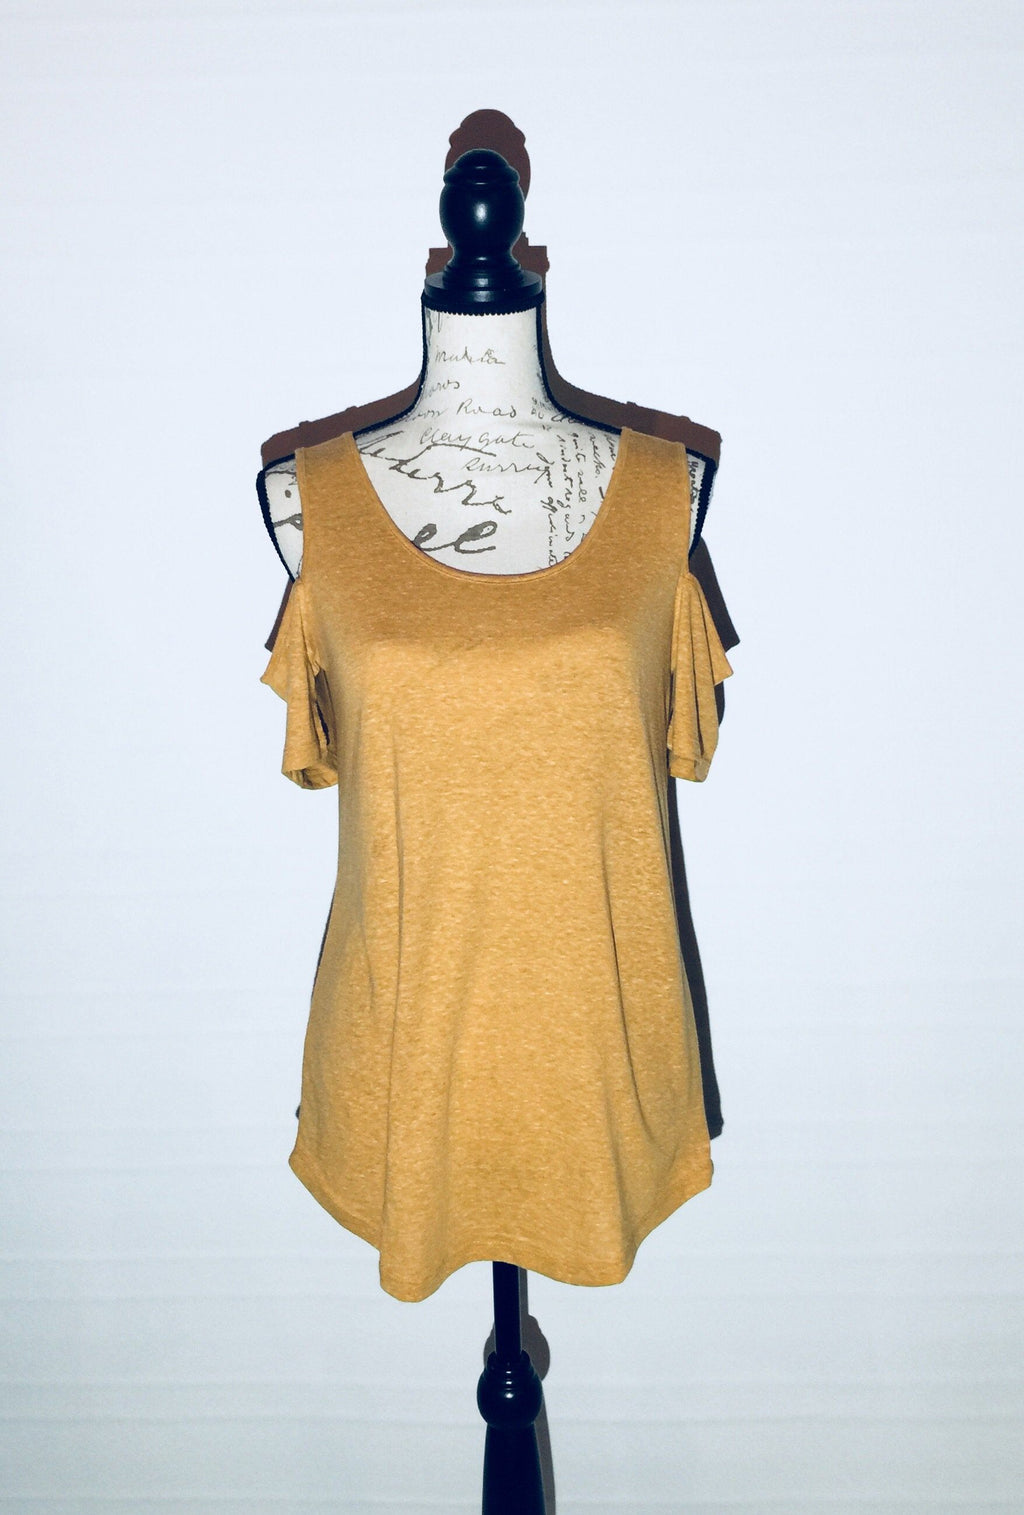 50% Off Women's Cold Shoulder Summer Top Yellow: S/M/L Tunics MomMe and More